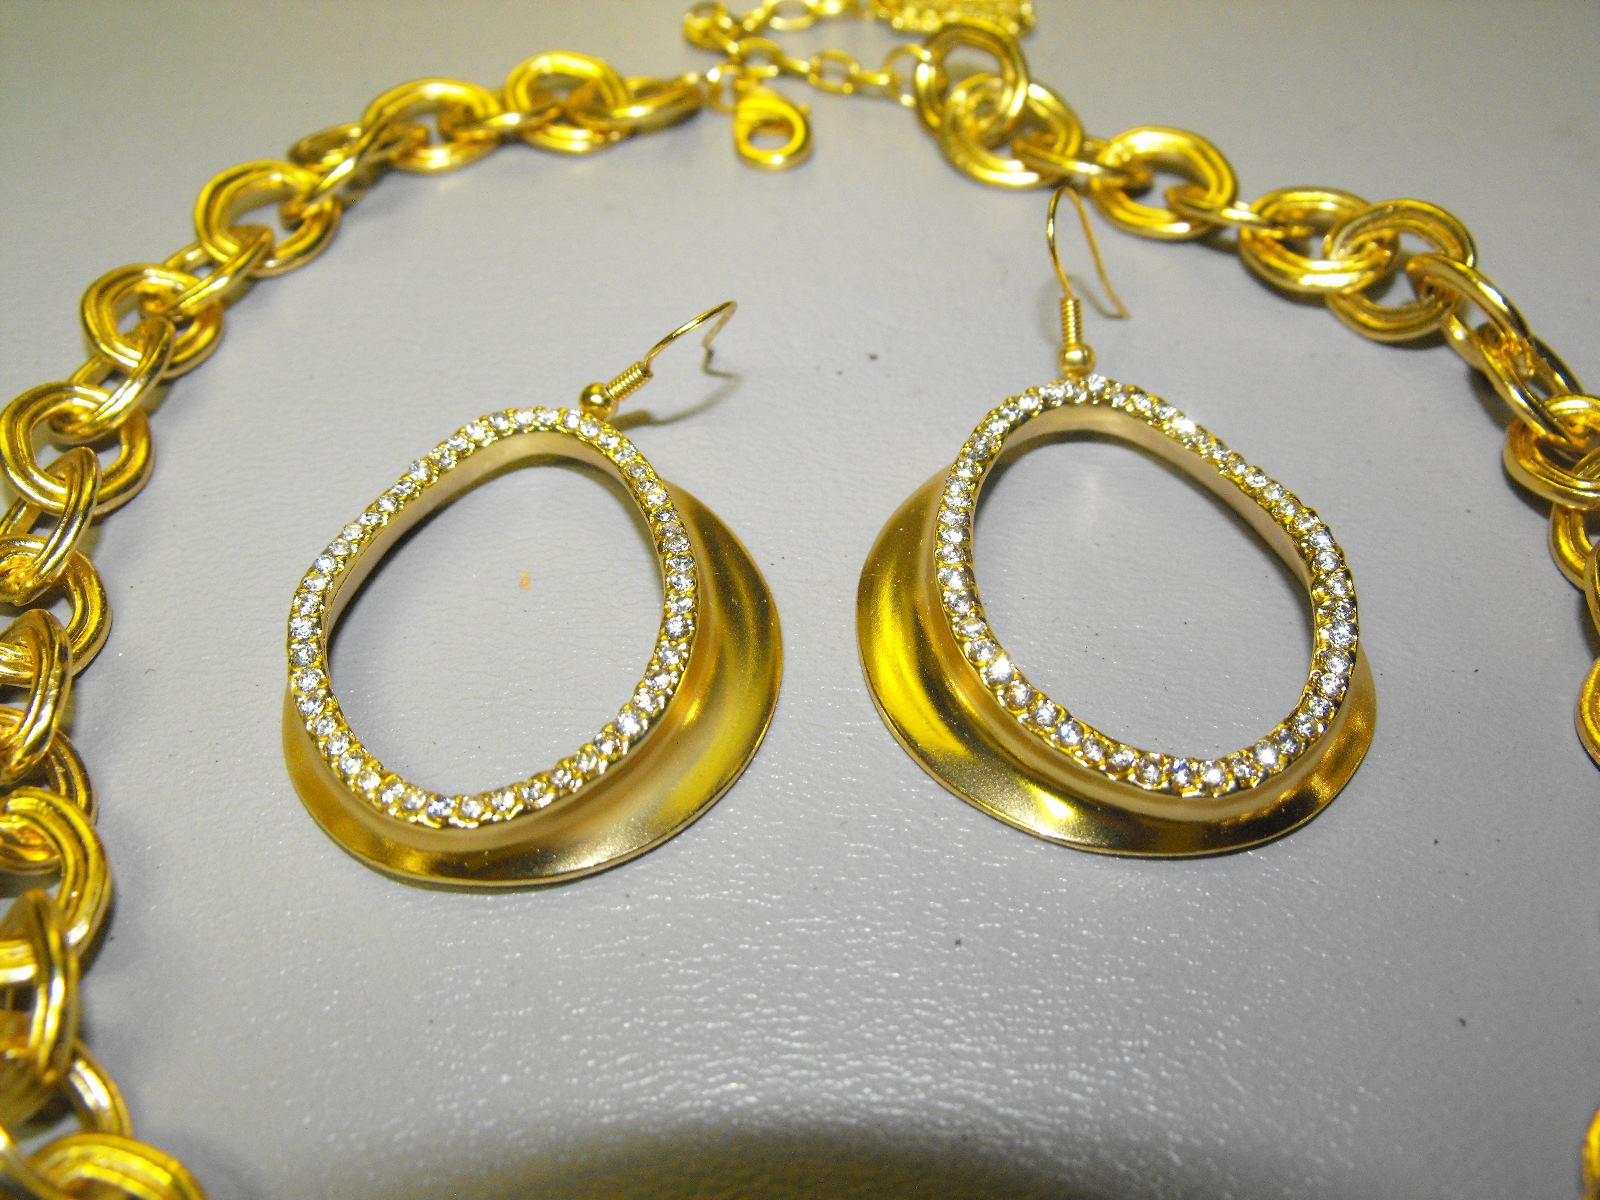 24 Kt Gold Plated French Designer Necklace Set Clive S